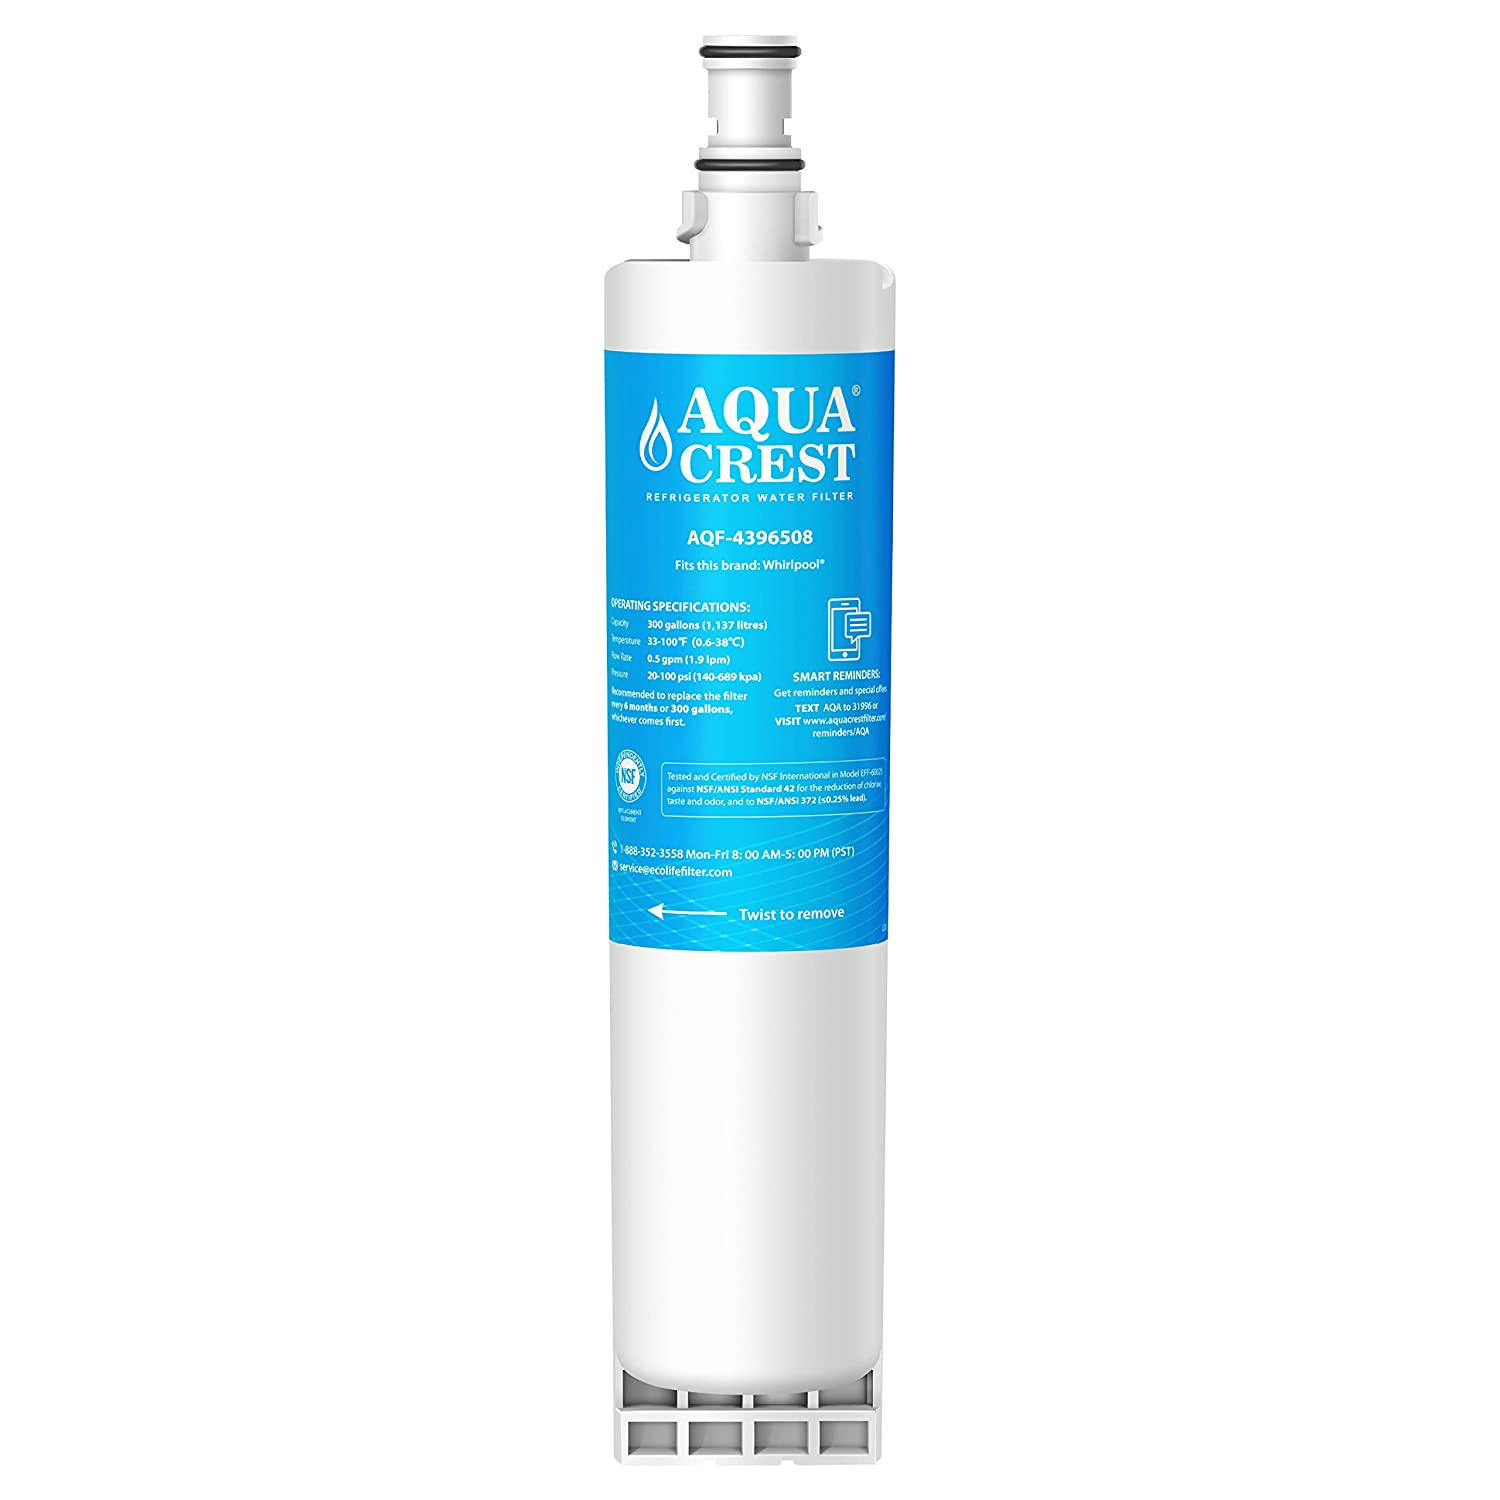 AQUACREST 4396508 Refrigerator Water Filter, Compatible with Whirlpool 4396508 4396510 EDR5RXD1, EveryDrop Filter 5, Kenmore 46-9010, PUR W10186668, NLC240V